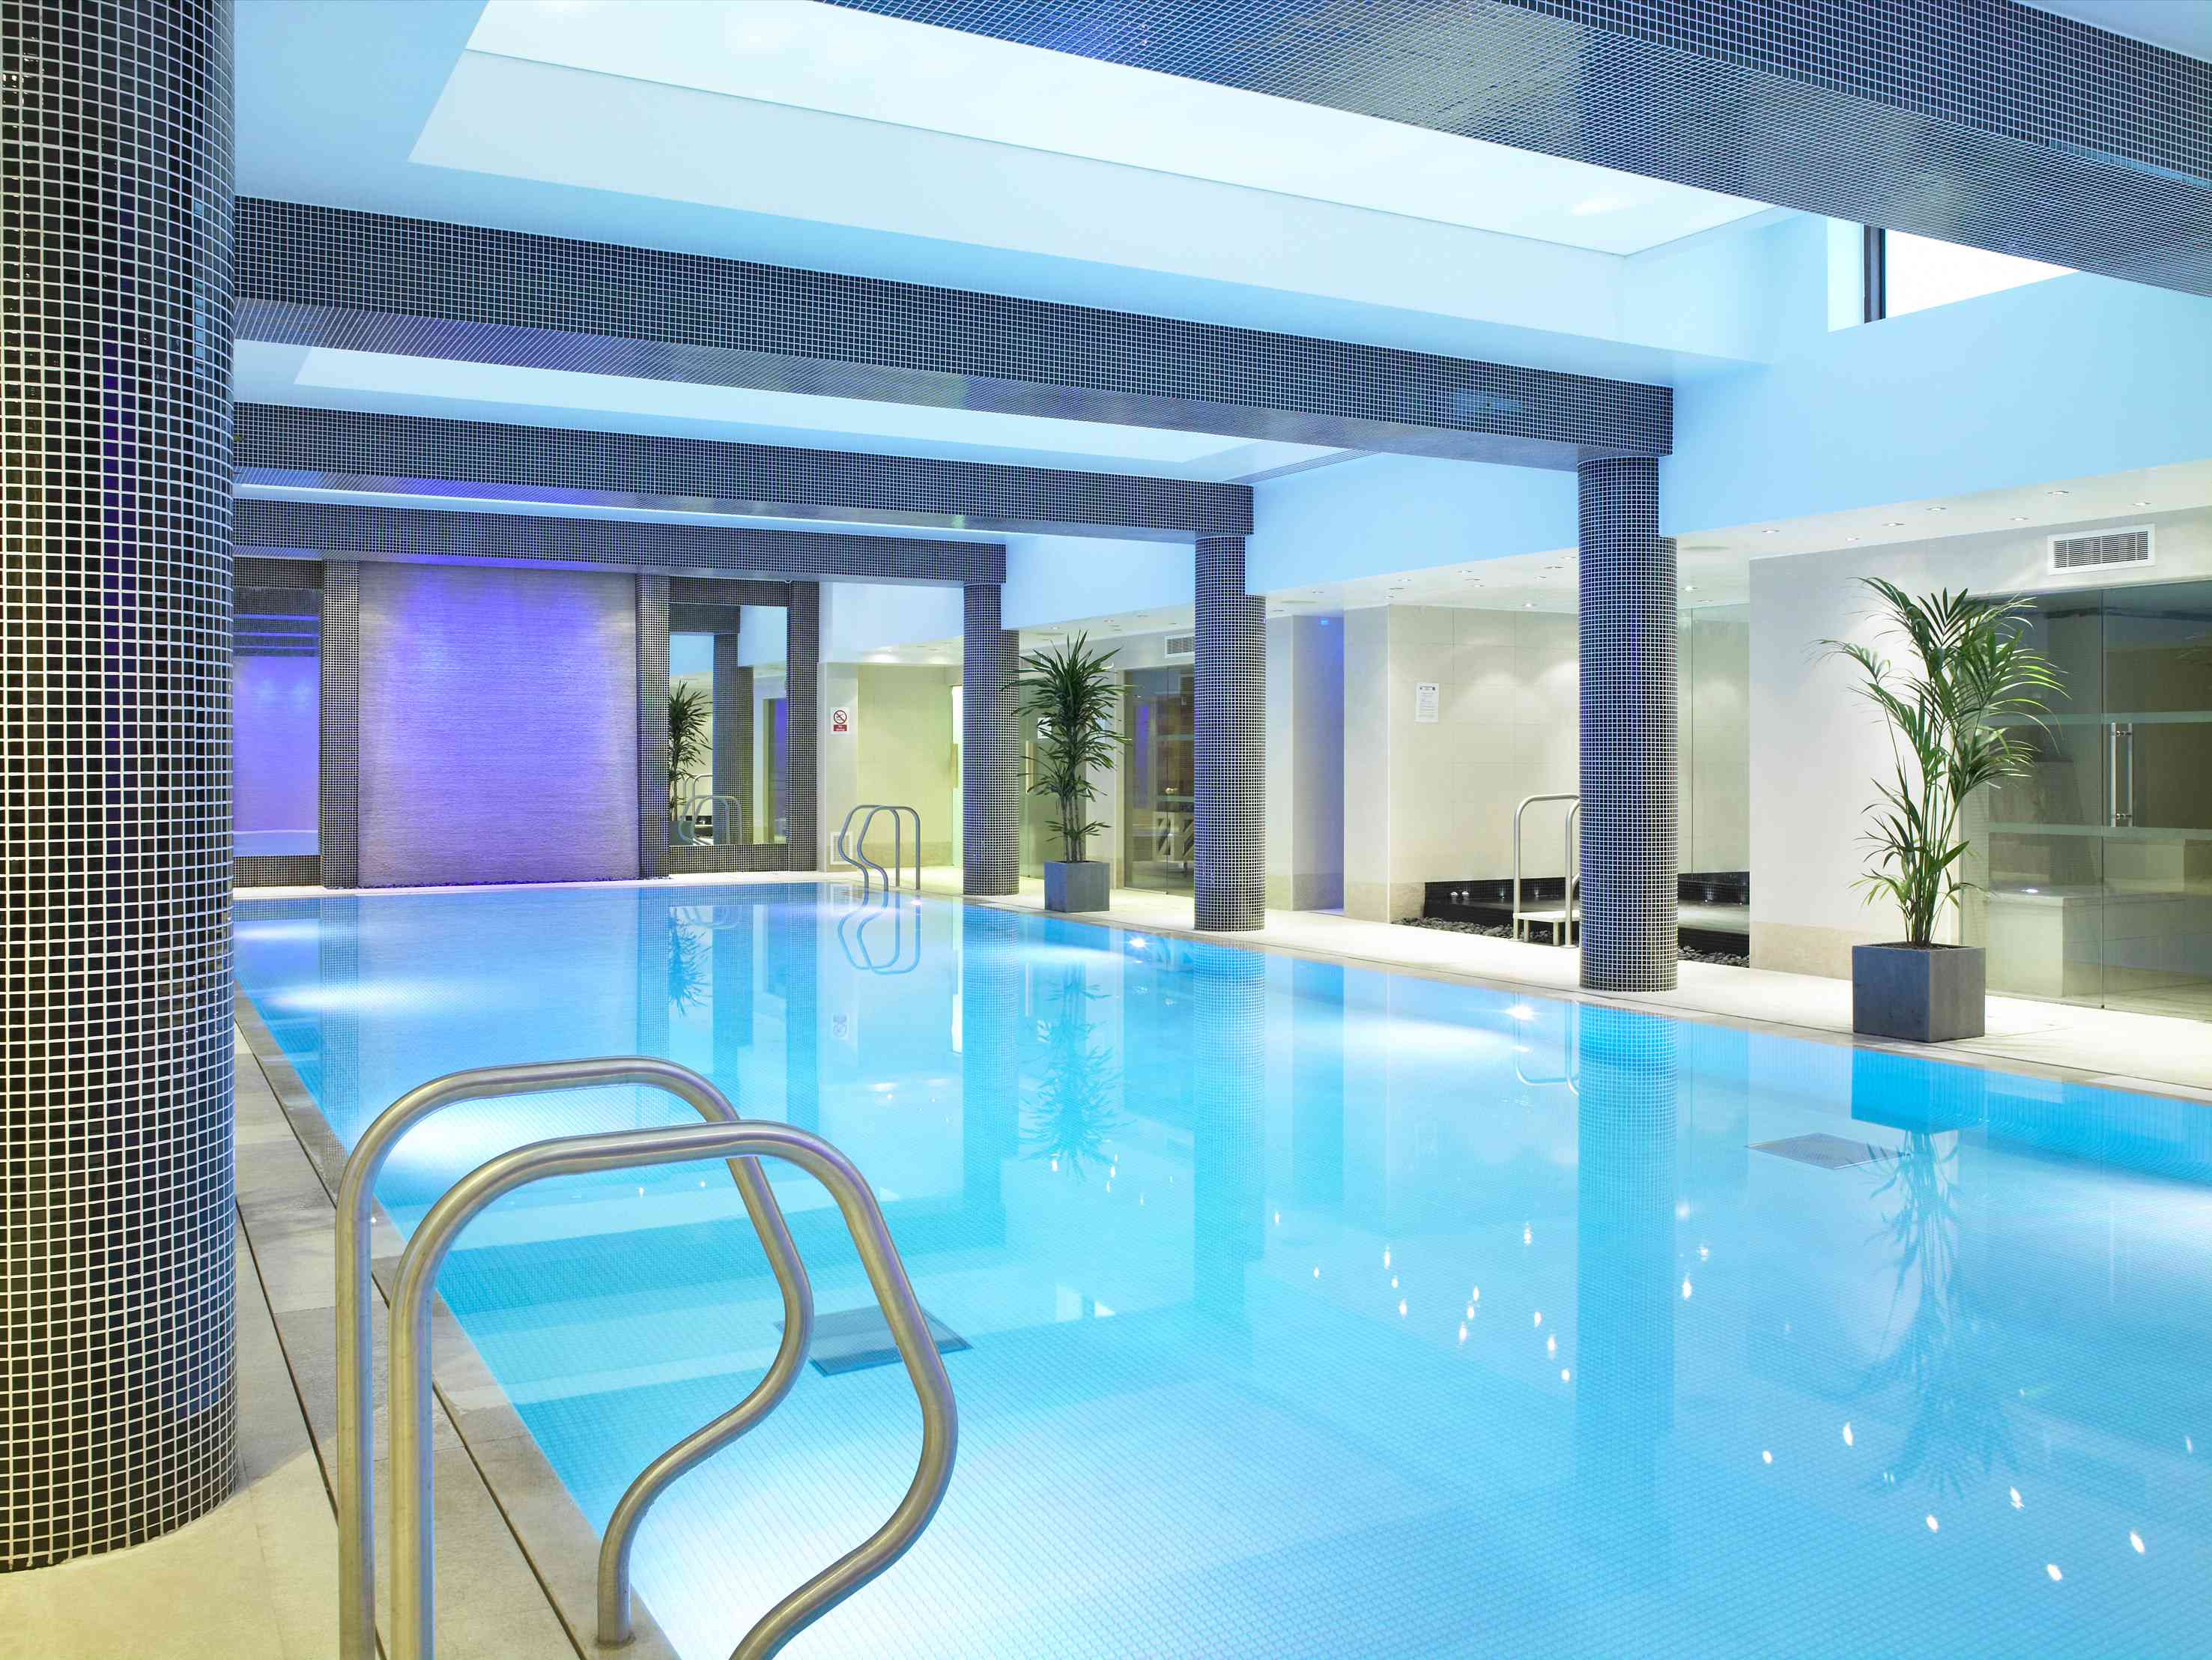 Spa pool  Spa Design Consultant - Top 5 tips for designing a spectacular pool